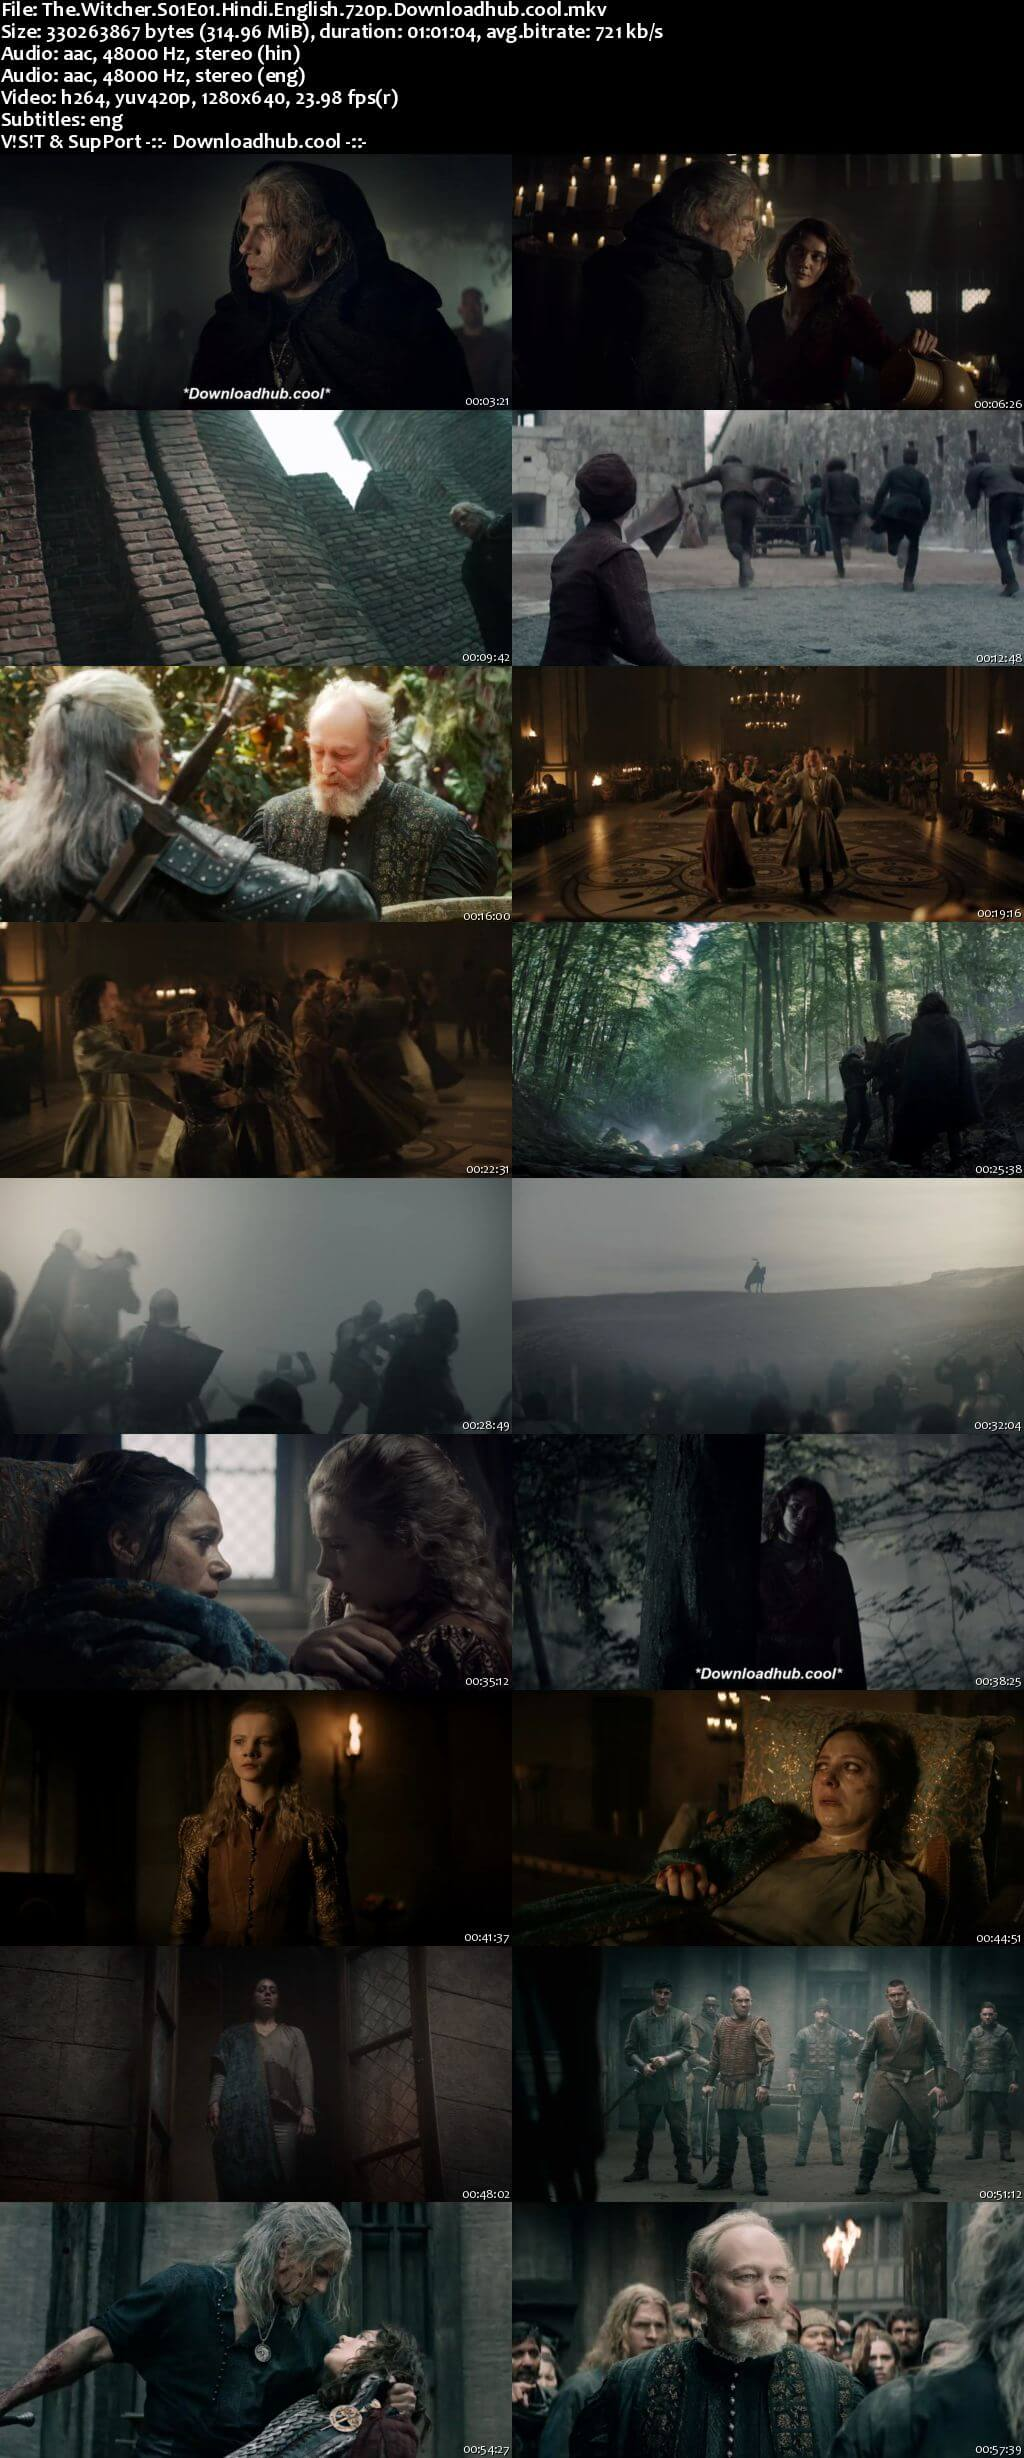 The Witcher S01 Complete Hindi Dual Audio 720p Web-DL ESubs